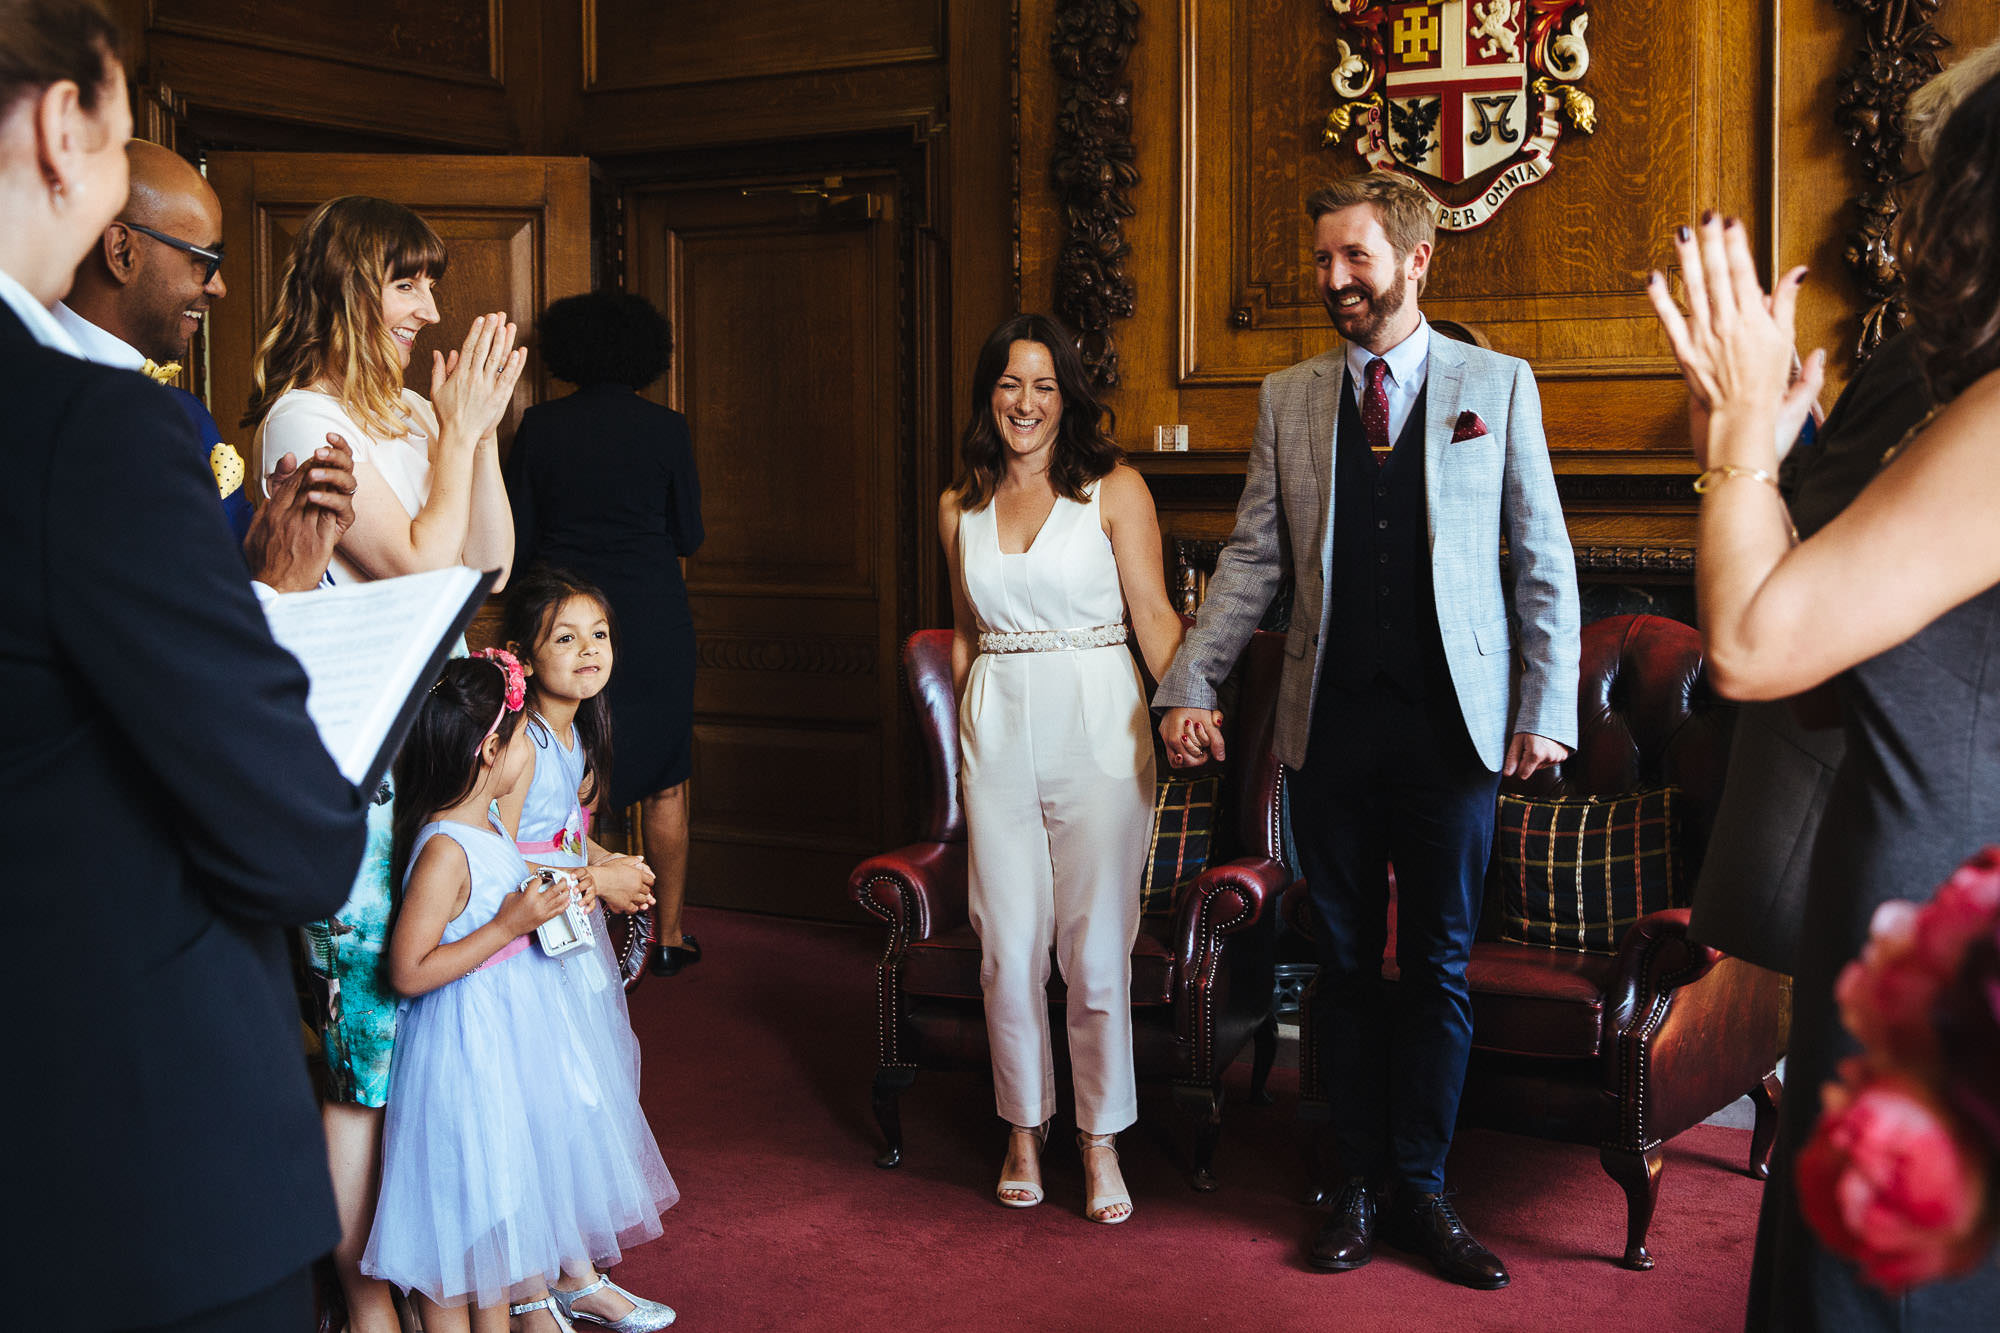 Mayor's-Parlour-Islington-Town-Hall-Wedding-003